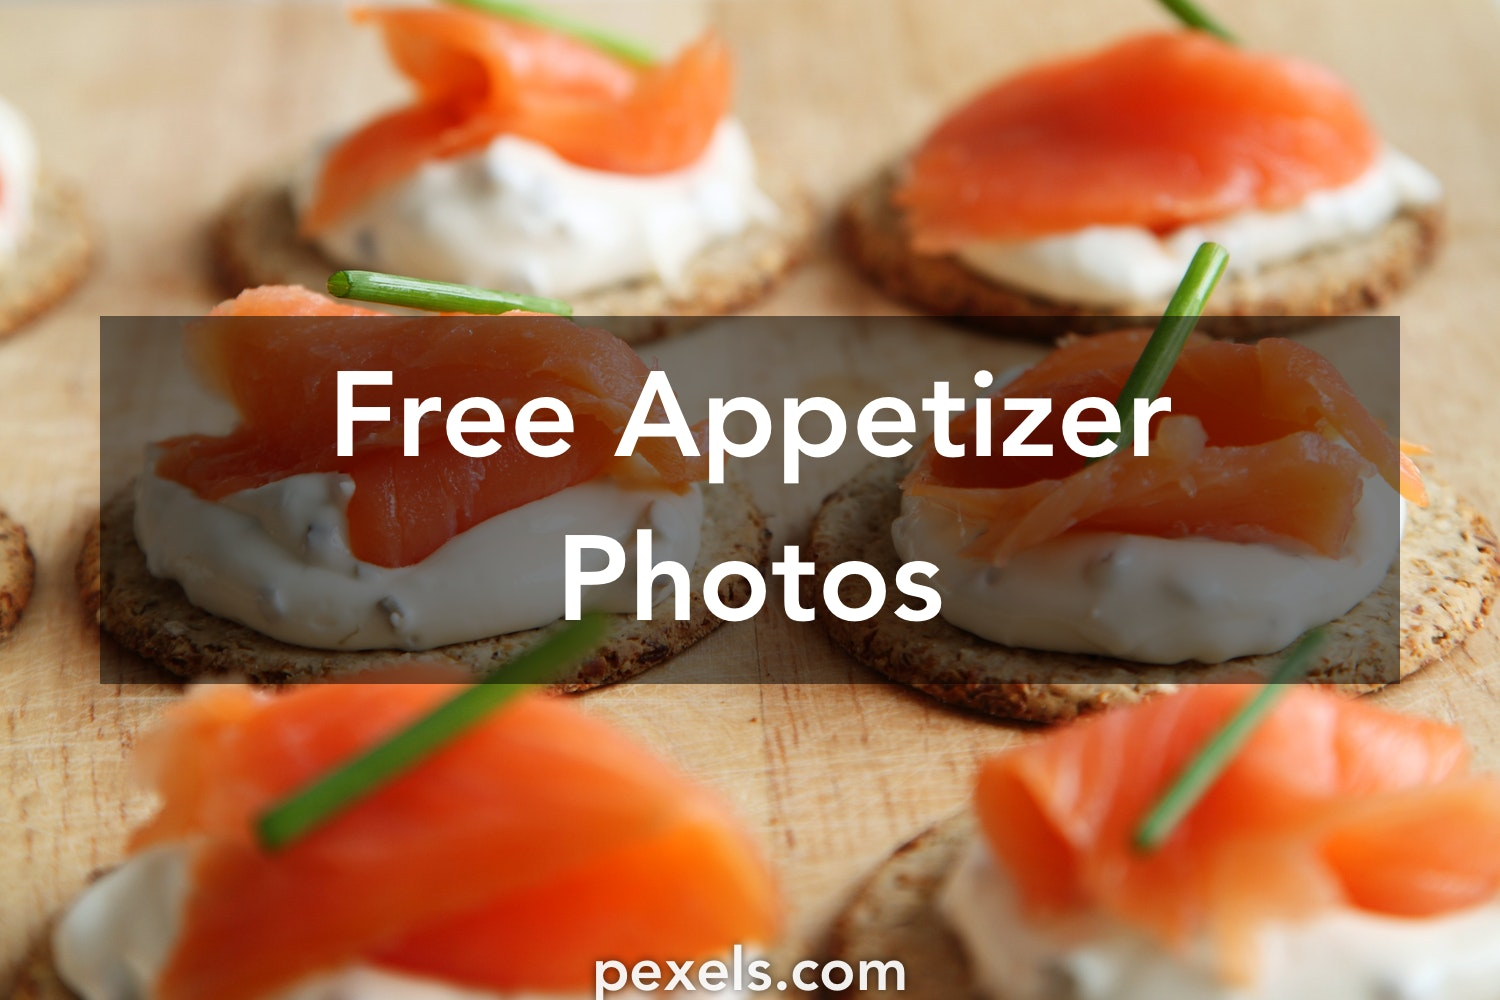 Free stock photos of appetizer pexels for Canape meaning in english